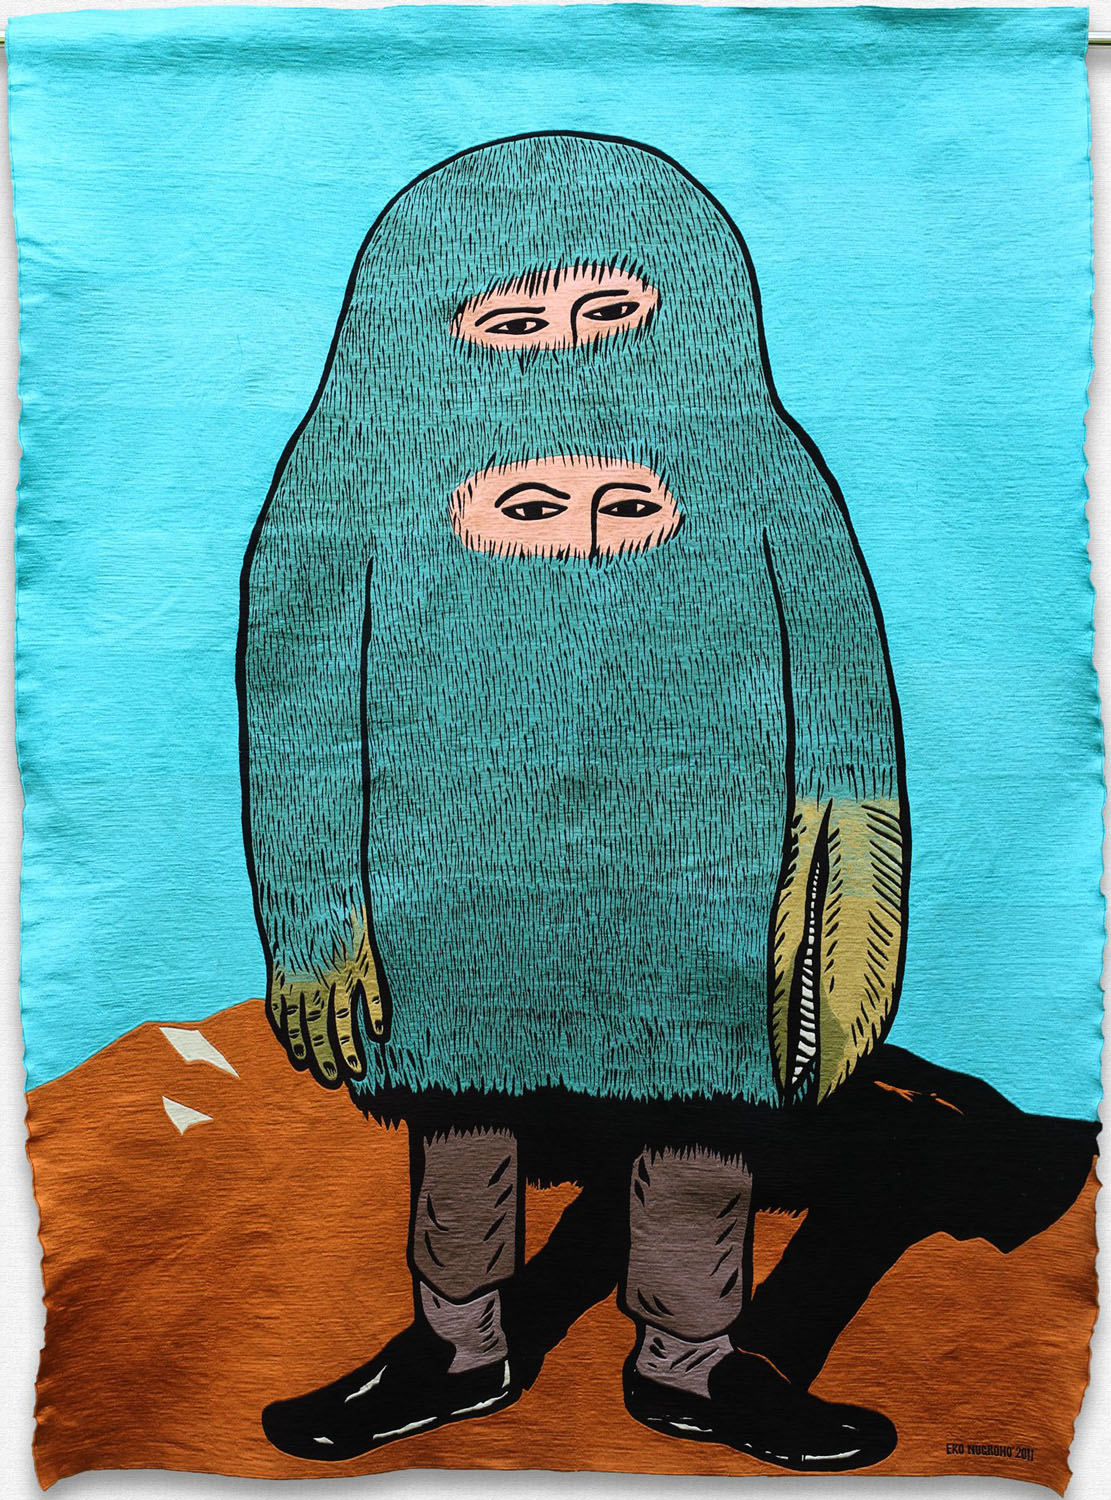 Eko Nugroho   I was in wrong generation , 2011 embroidered rayon thread on fabric backing 79.53 x 58.27 inches 202 x 148 cm